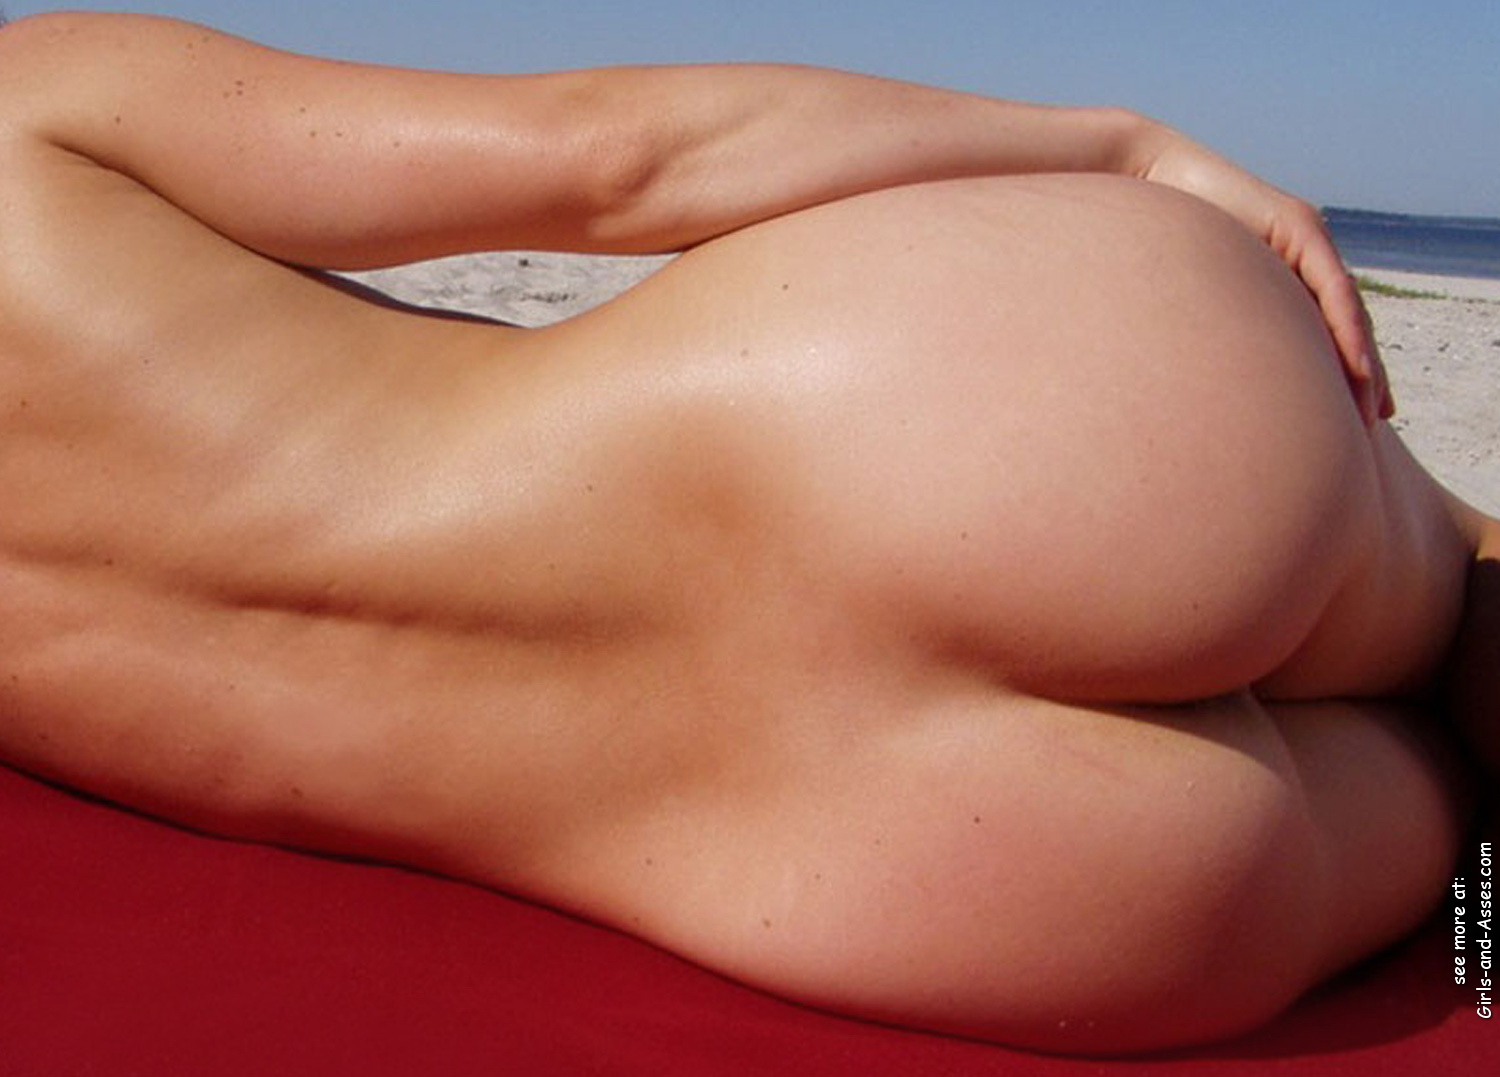 naked sunbathing tanning on the beach pic 03146